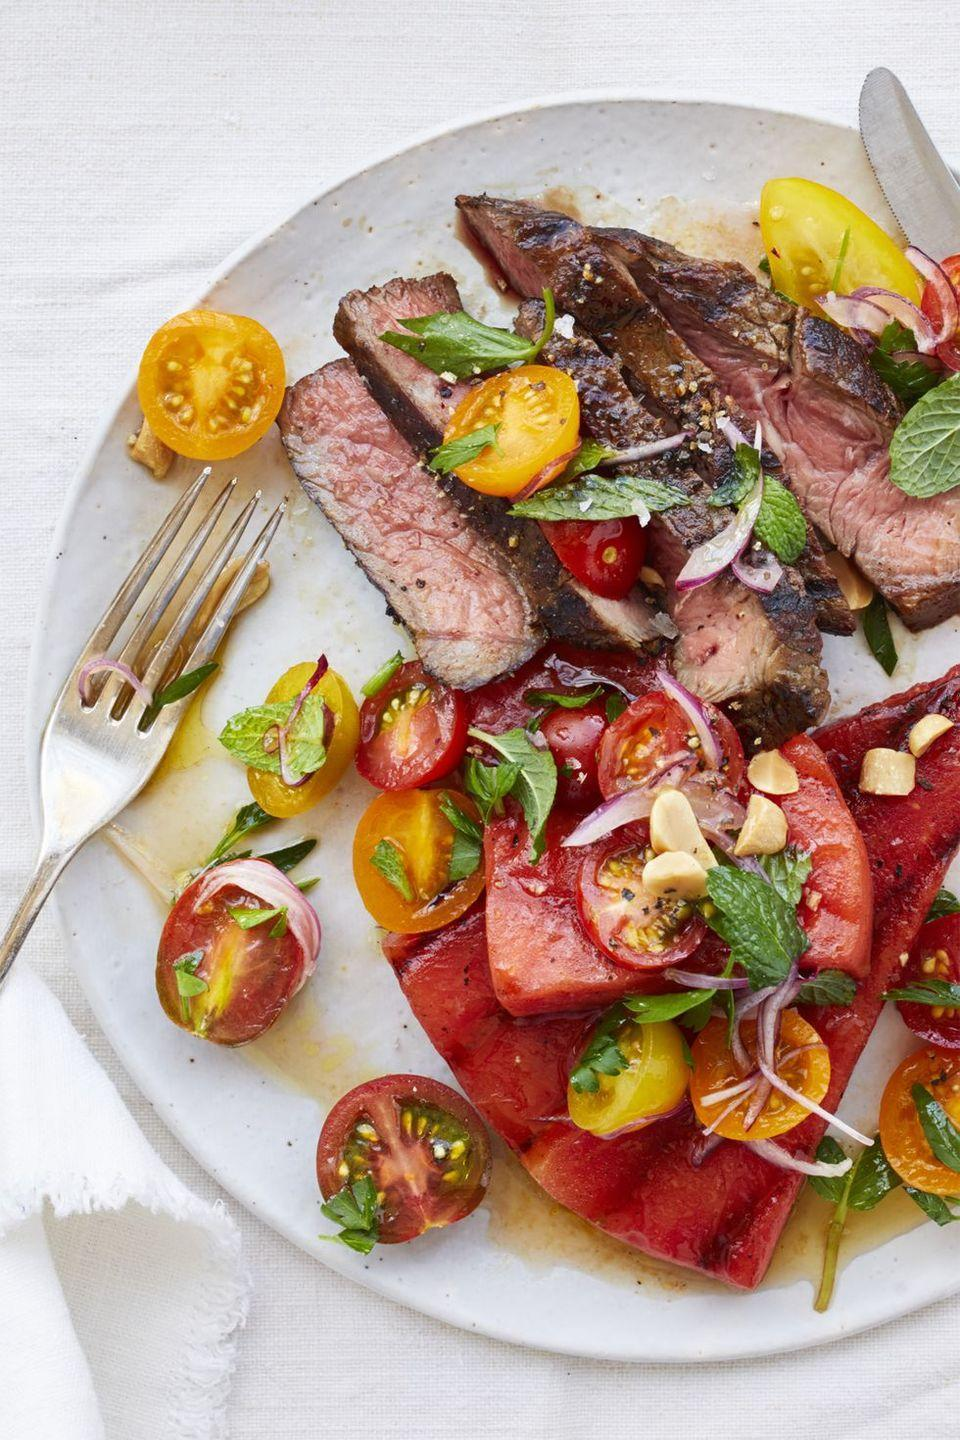 "<p>Toss the watermelon on the grill next to the steaks for the ultimate summer meal. </p><p><a href=""https://www.womansday.com/food-recipes/food-drinks/recipes/a59400/grilled-watermelon-salad-steak-tomatoes-recipe/"" rel=""nofollow noopener"" target=""_blank"" data-ylk=""slk:Get the recipe for Grilled Watermelon and Steak Salad."" class=""link rapid-noclick-resp""><em>Get the recipe for Grilled Watermelon and Steak Salad.</em></a> </p>"